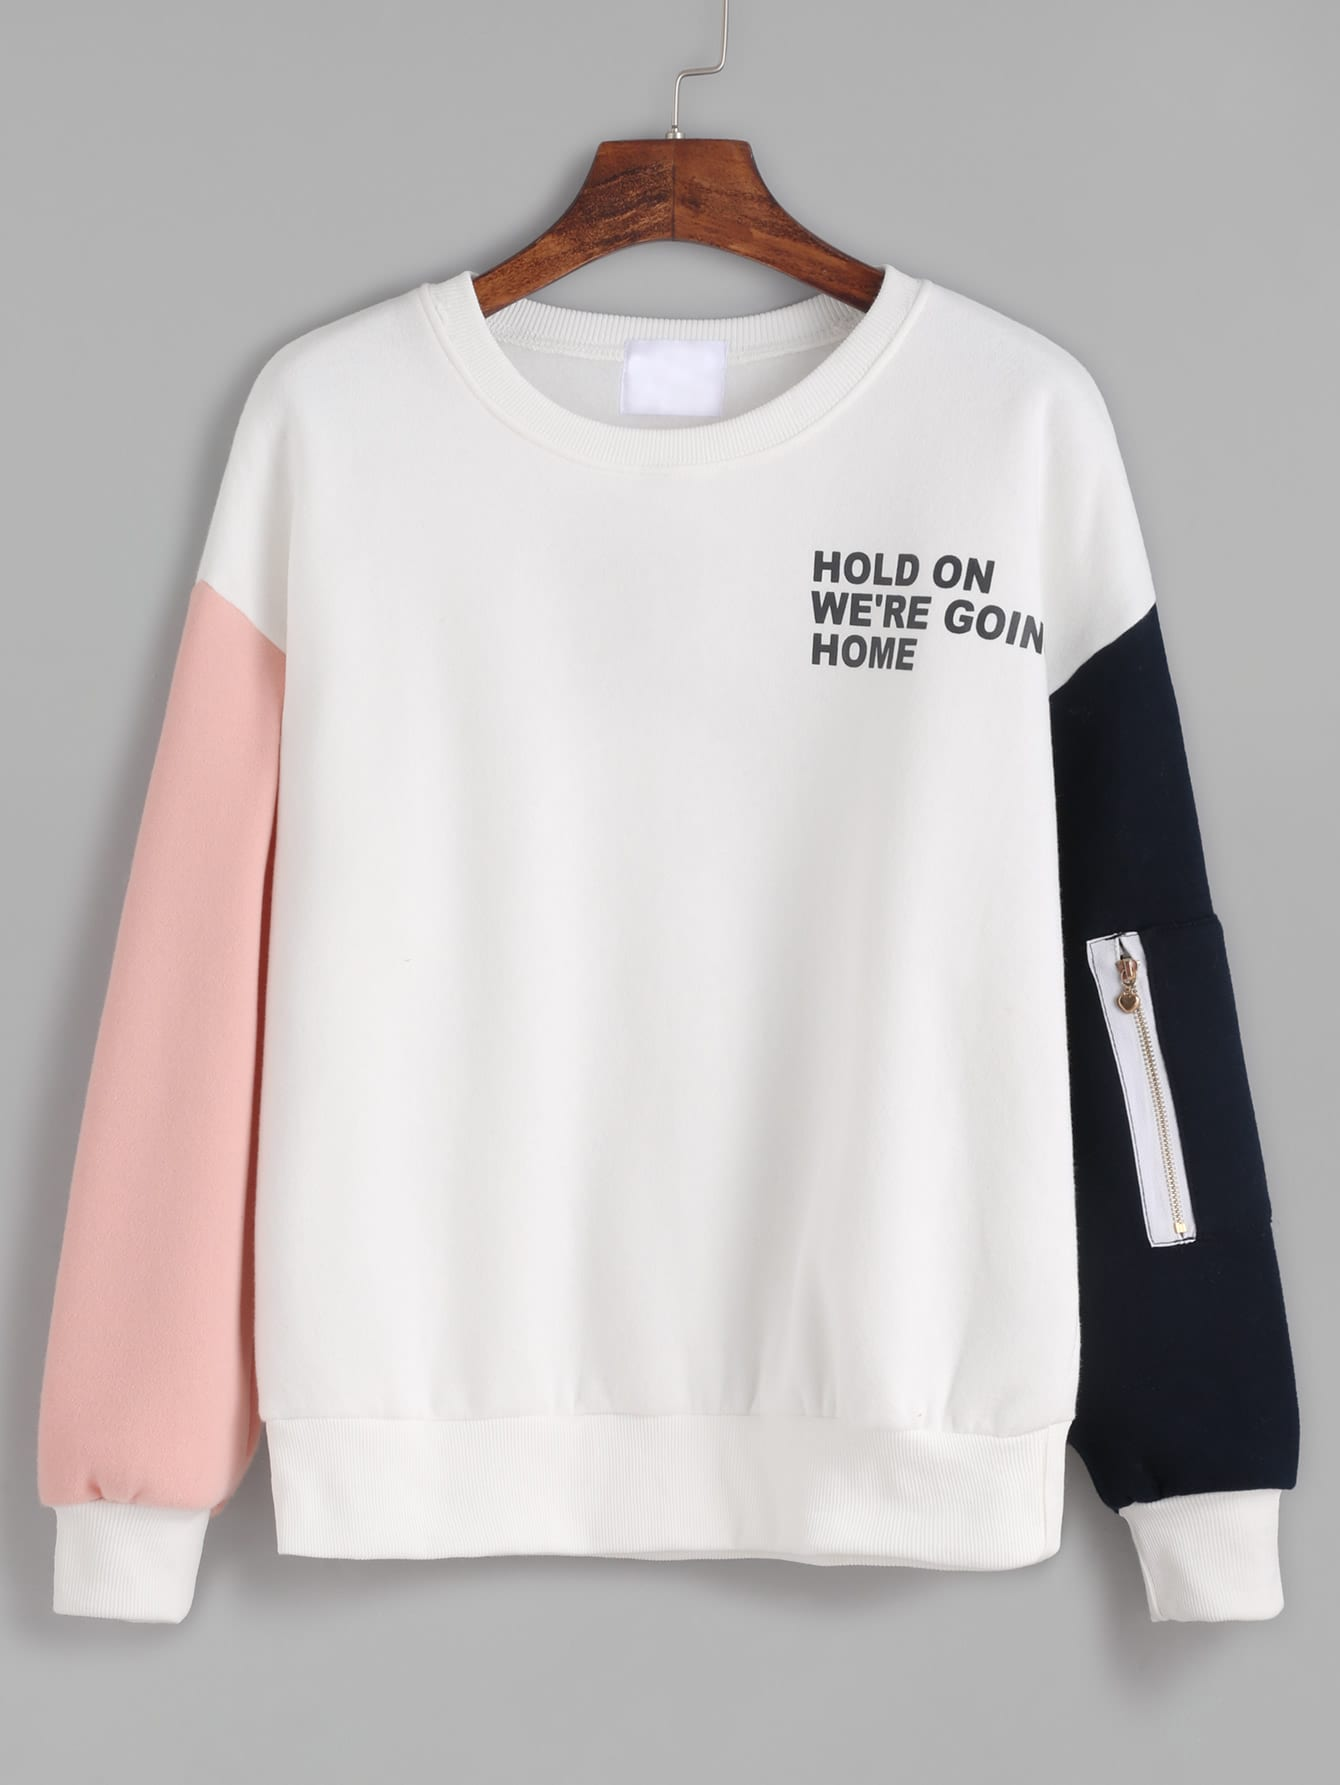 Contrast Drop Shoulder Letter Print Zipper Detail Sweatshirt kids letter print sweatshirt